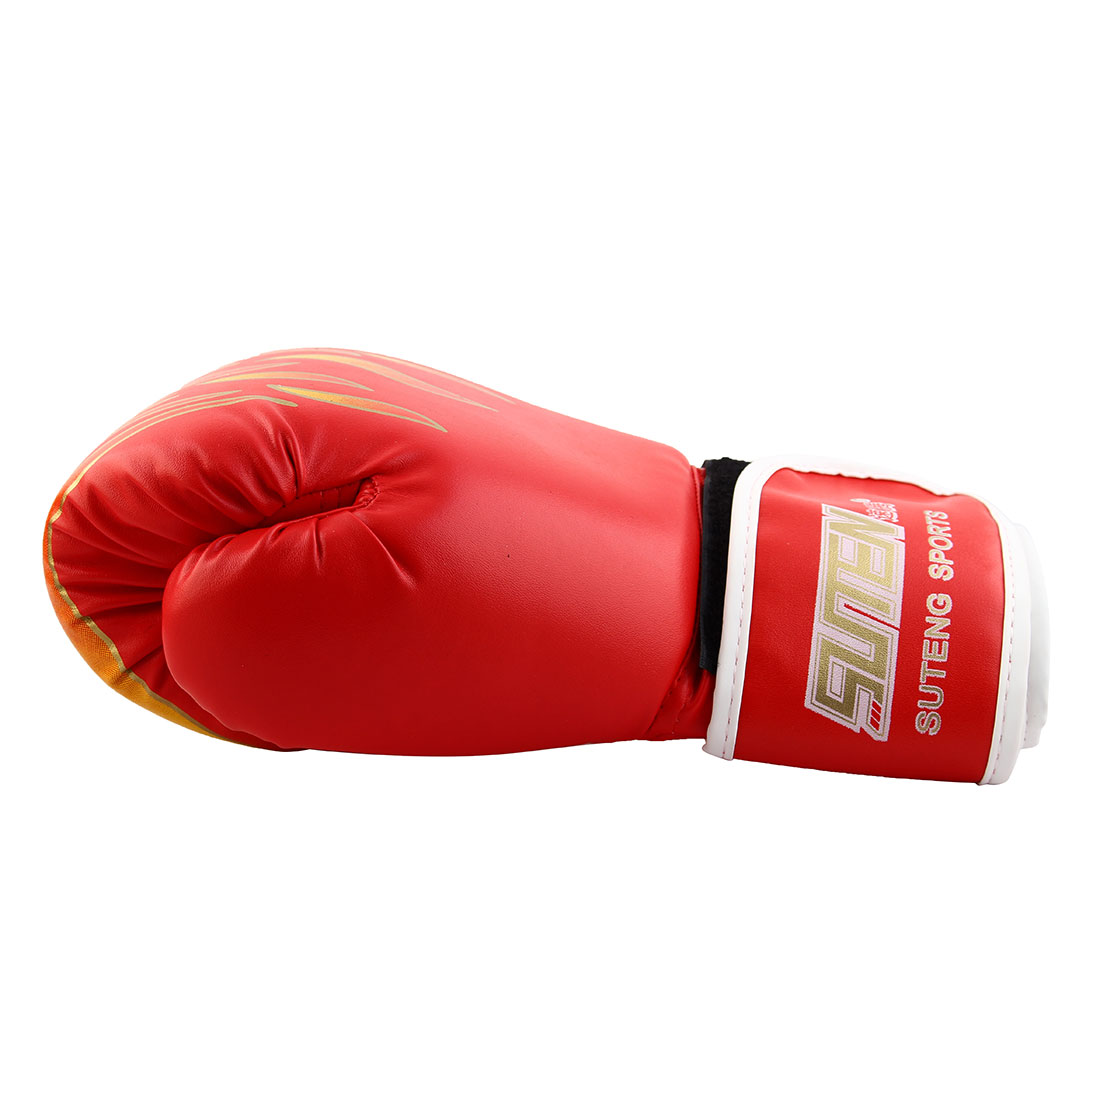 SUTENG Authorized Adult PU Fire Print Sparring Punching Bag Mitts Kickboxing Boxing Gloves Pair Red - image 1 de 3